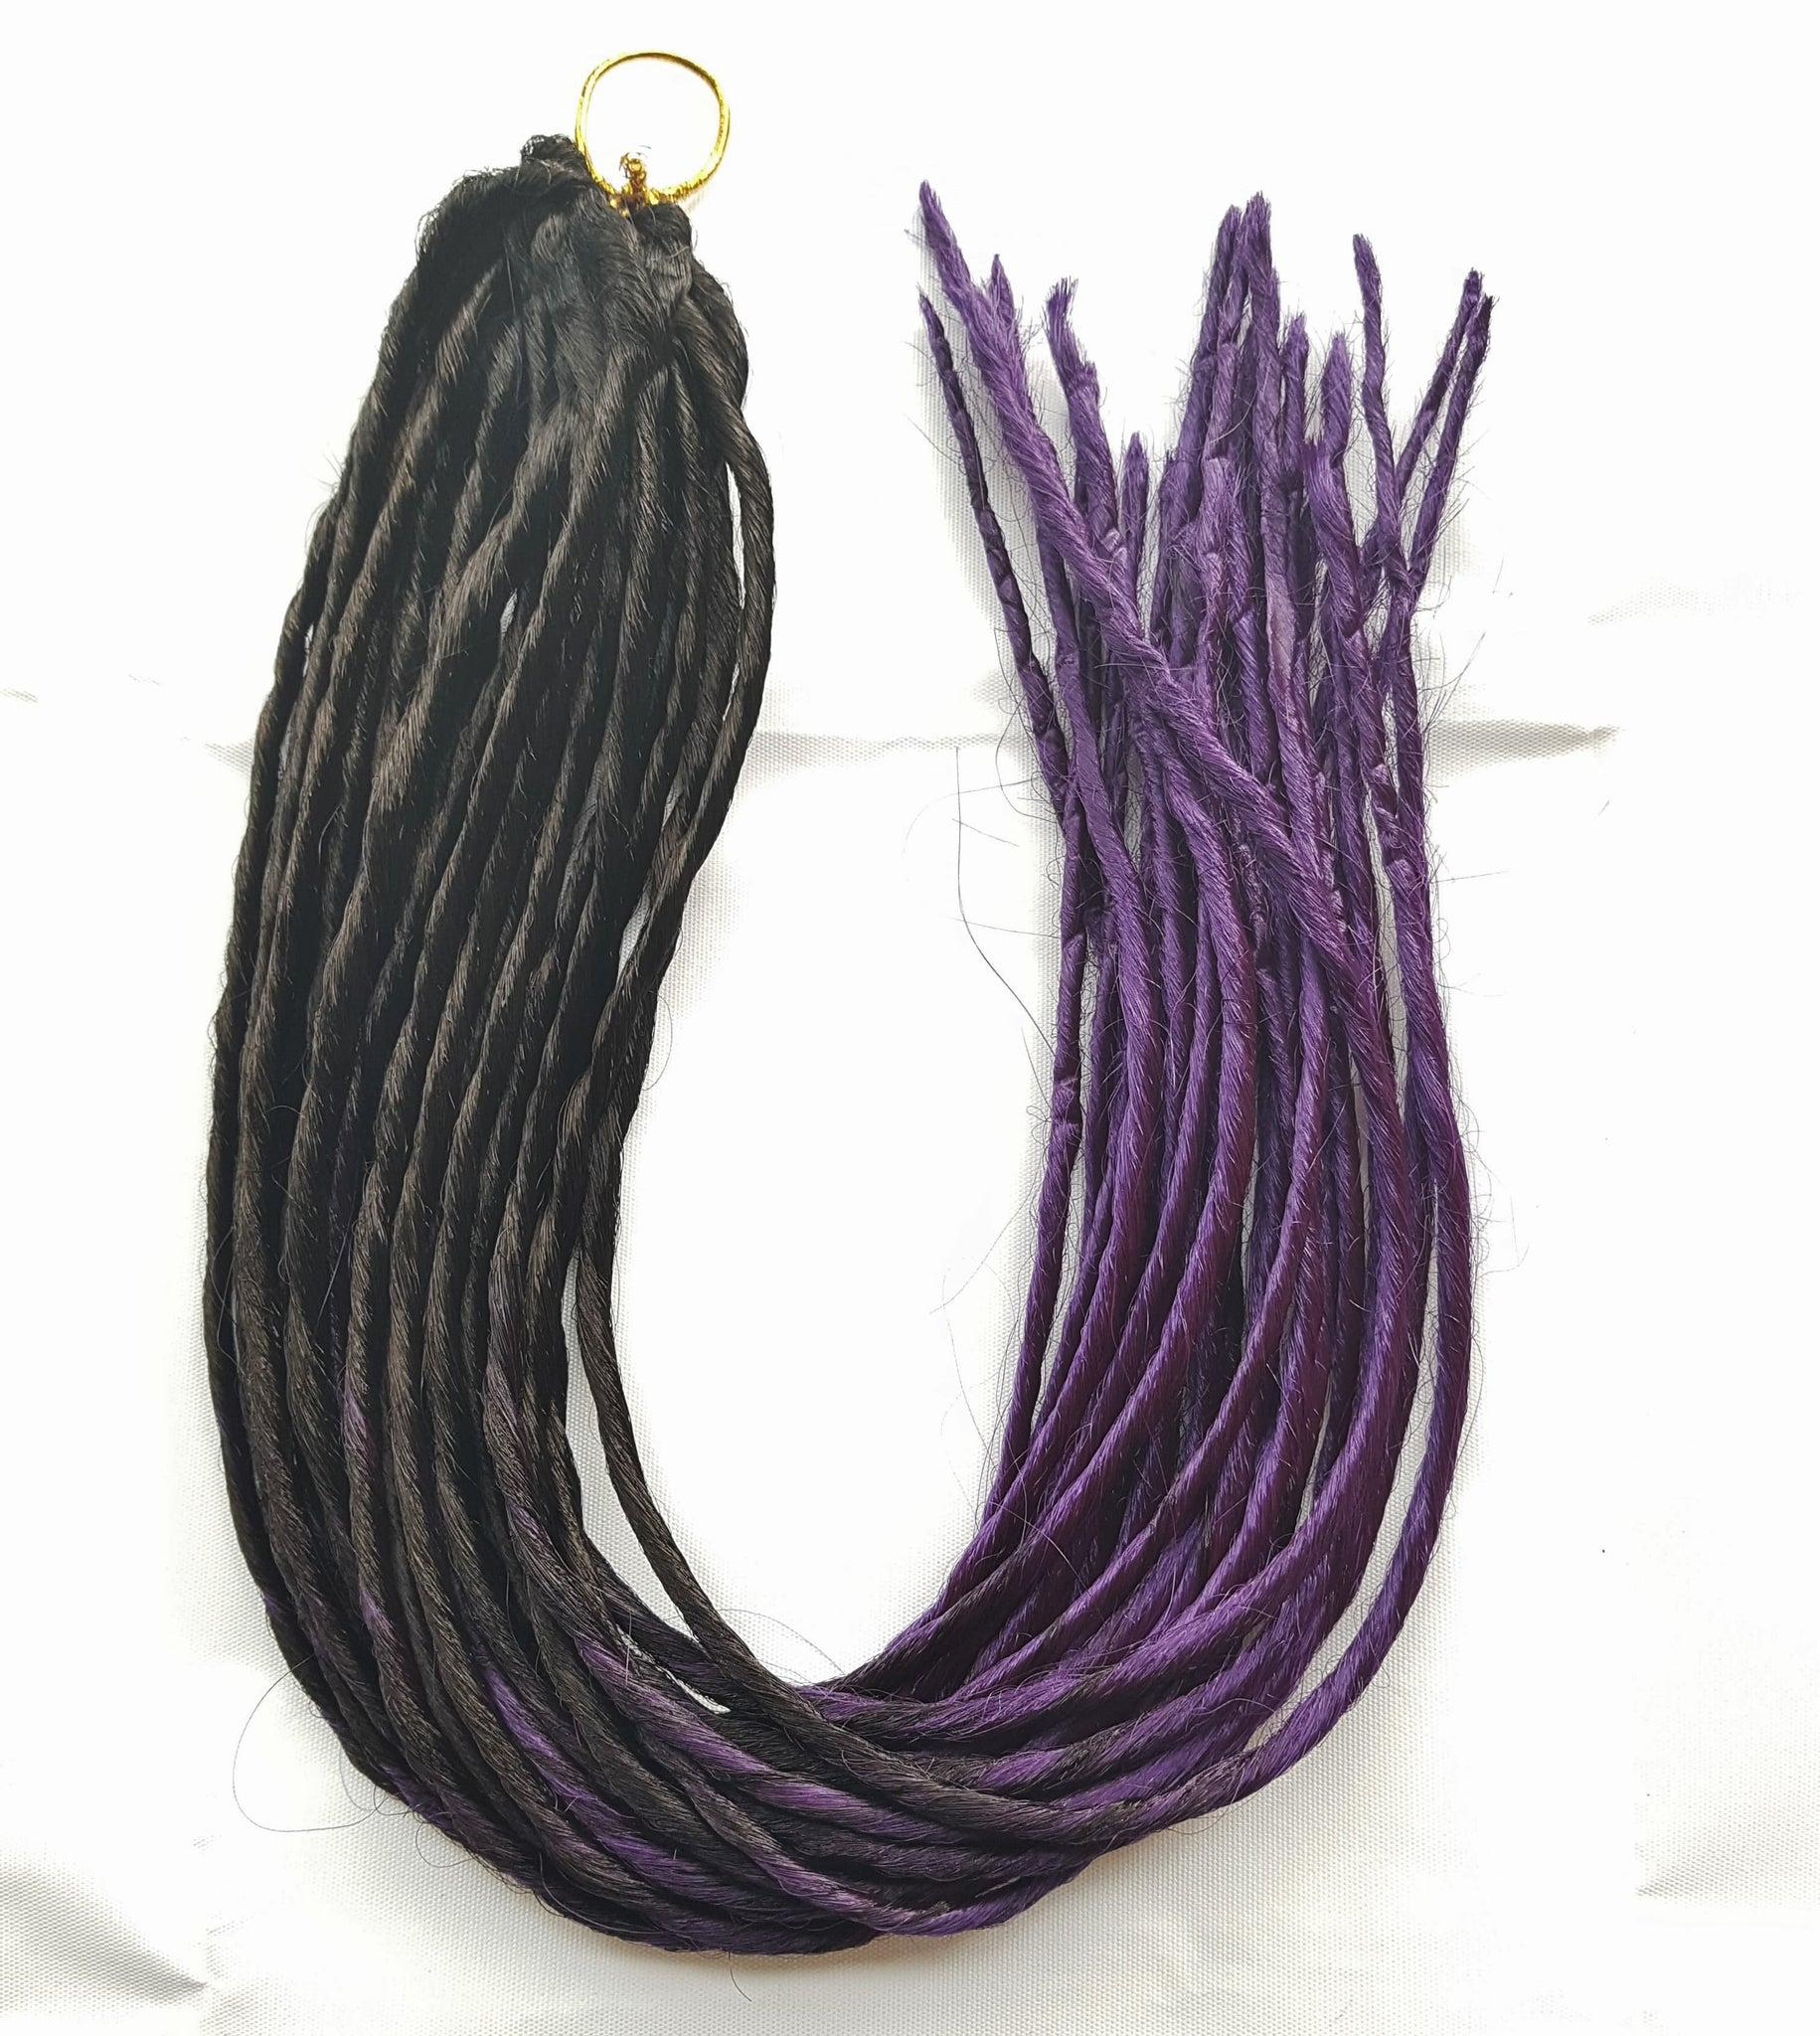 Elysee Star - #Black Dark Purple Transitional Synthetic Dreadlocks (Double Ended) (10 Pack)